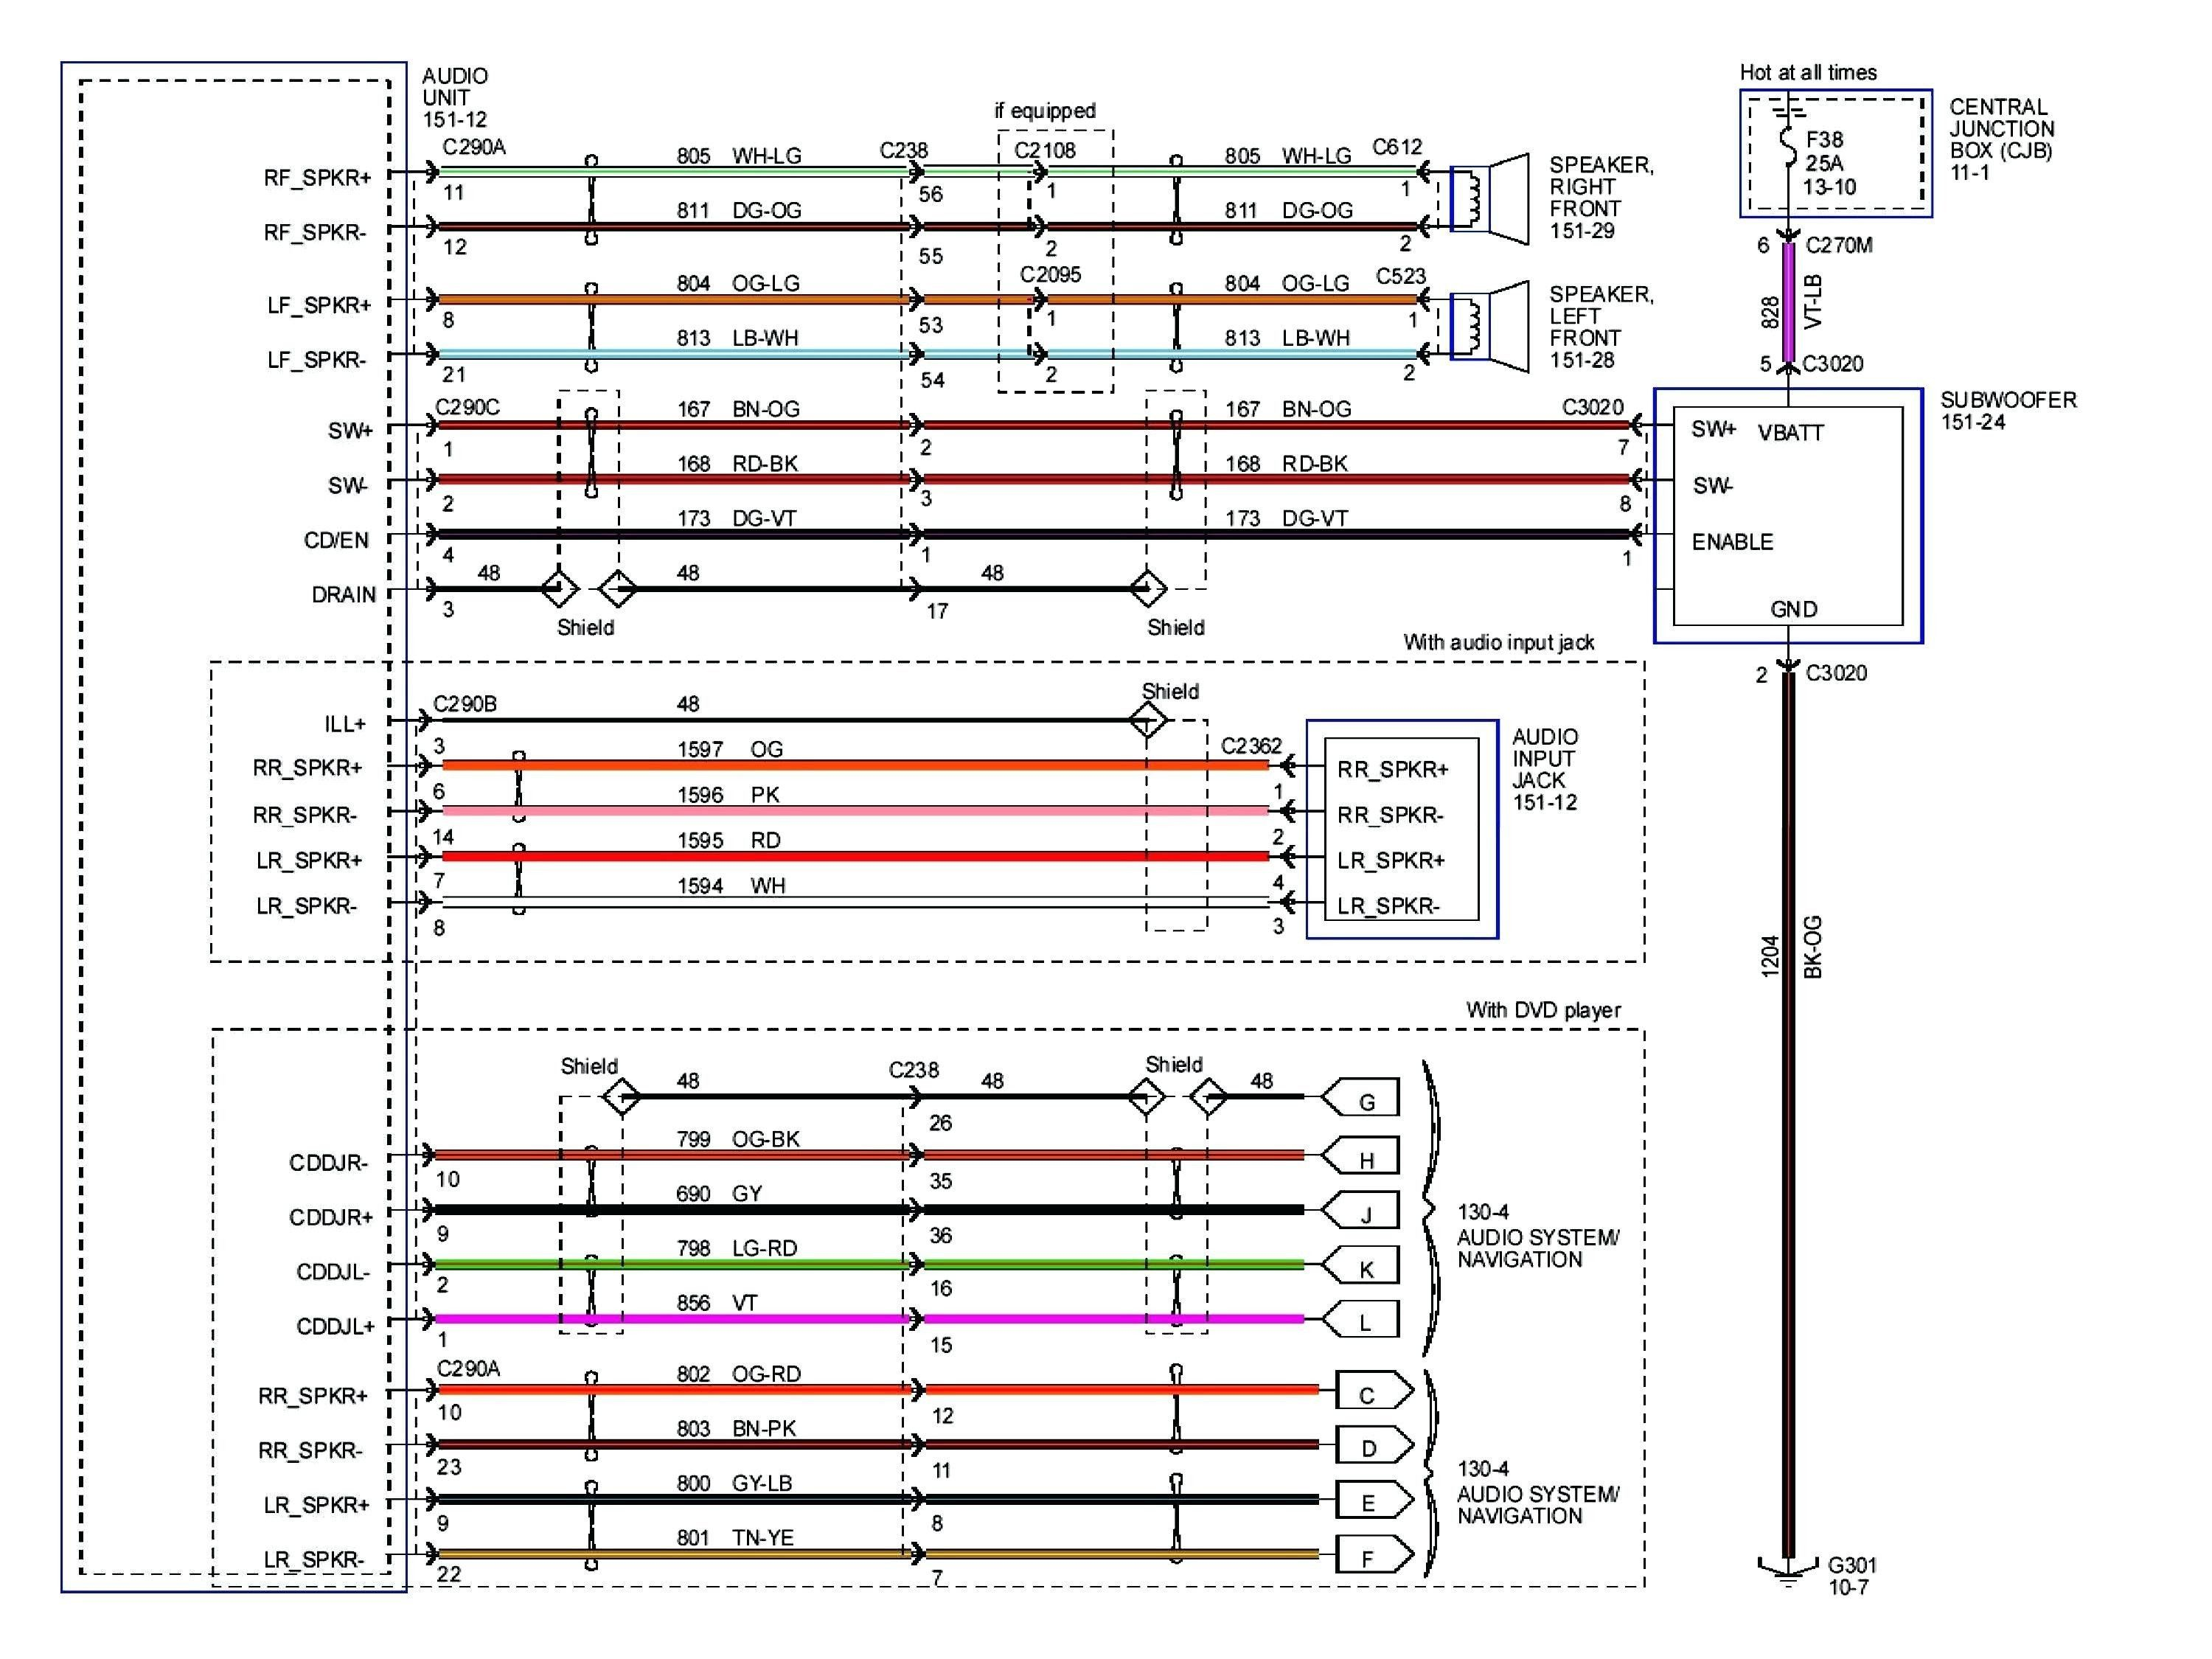 2006 Volkswagen Radio Wiring Diagram With 2001 Jeep Wrangler ... on